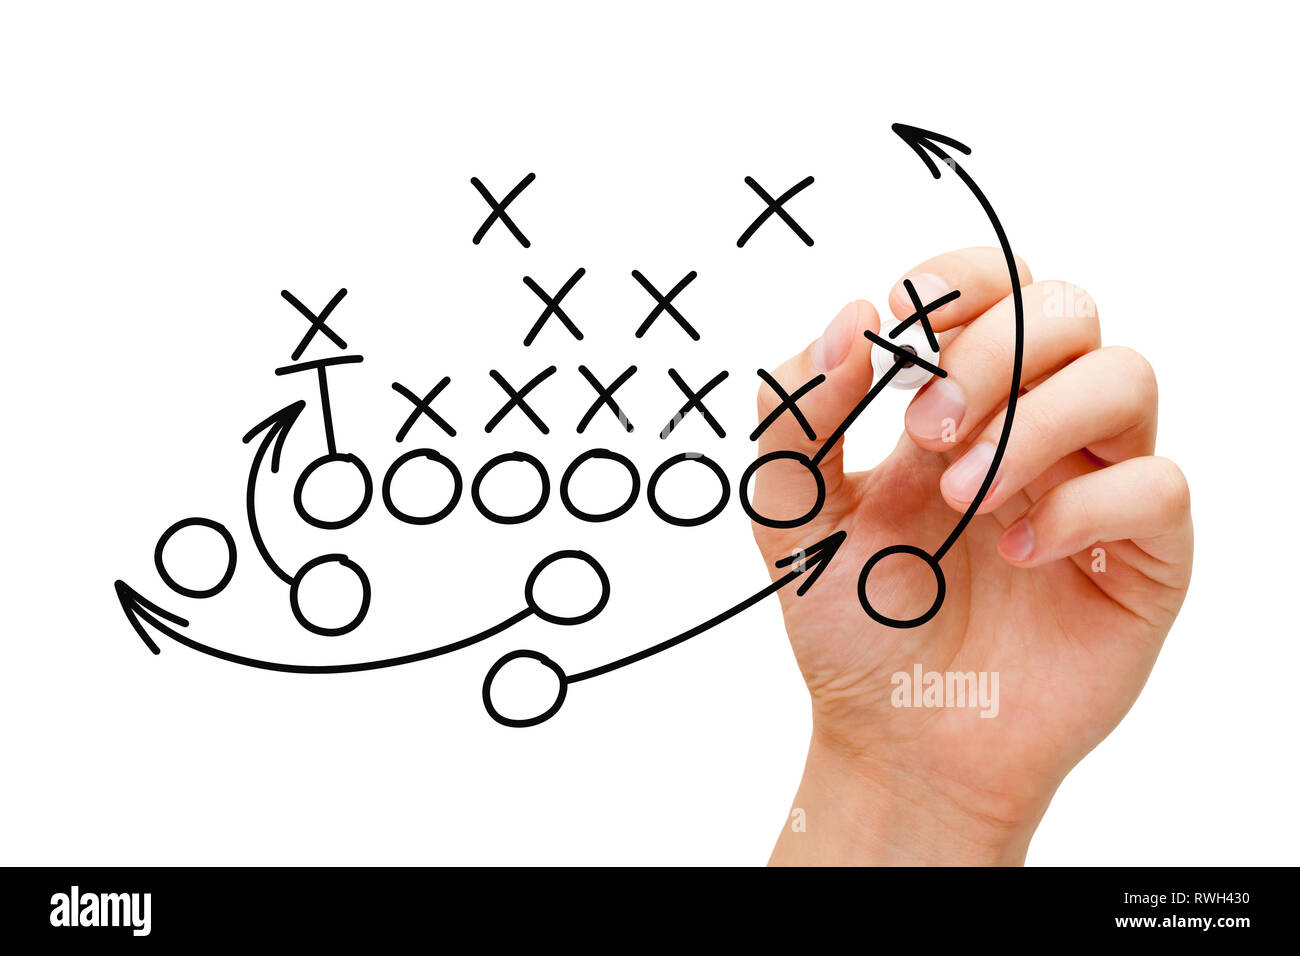 Coach drawing american football or rugby game playbook, tactics and strategy with black marker on white background. - Stock Image